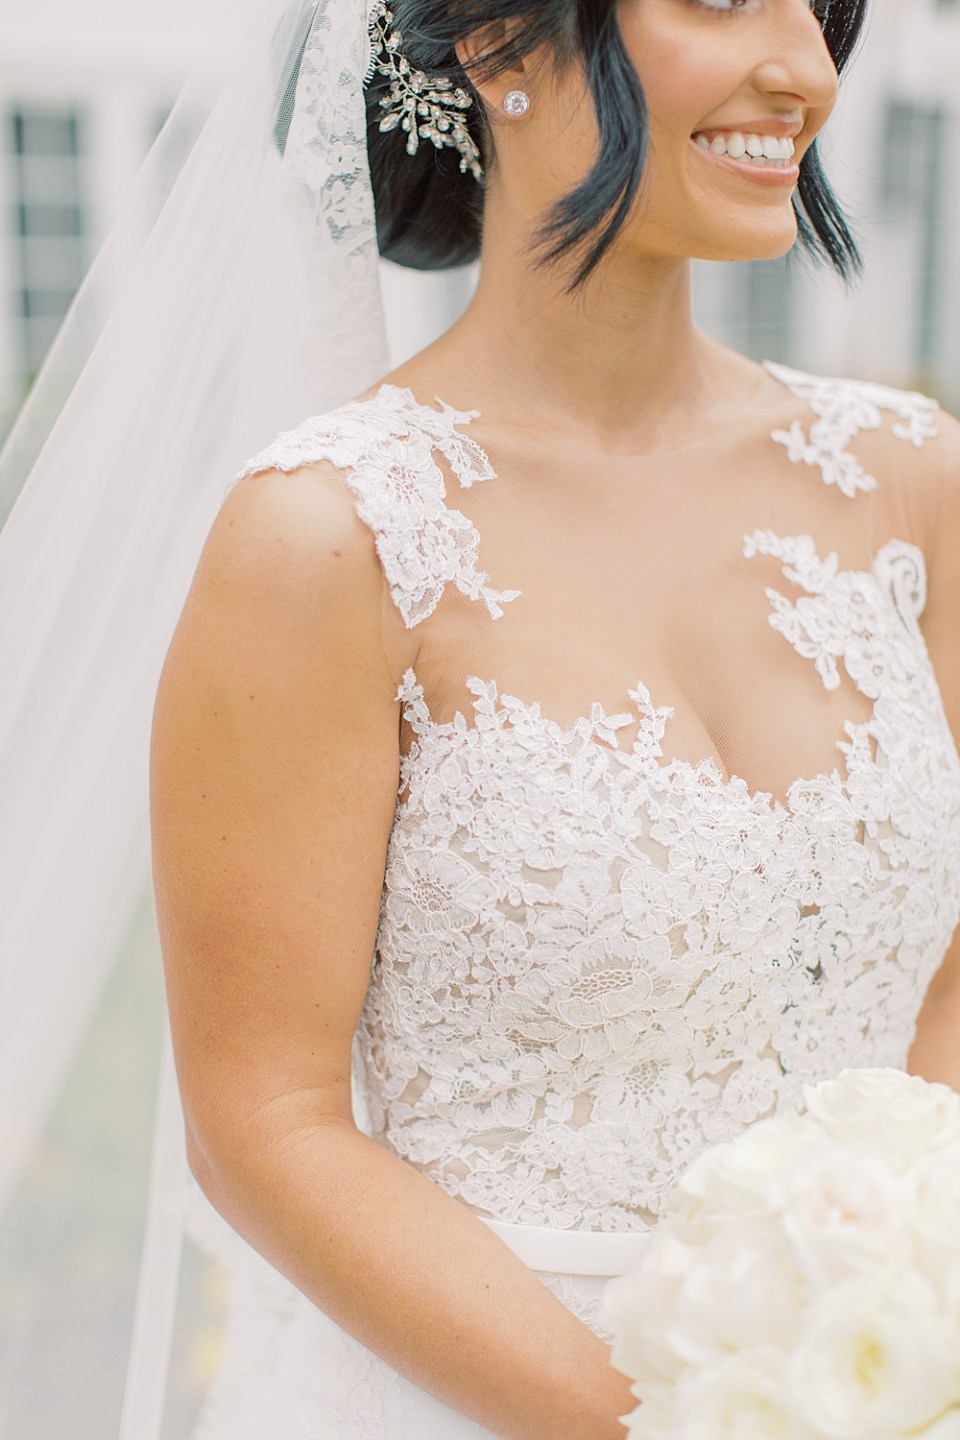 lace gown details | sarah canning photography